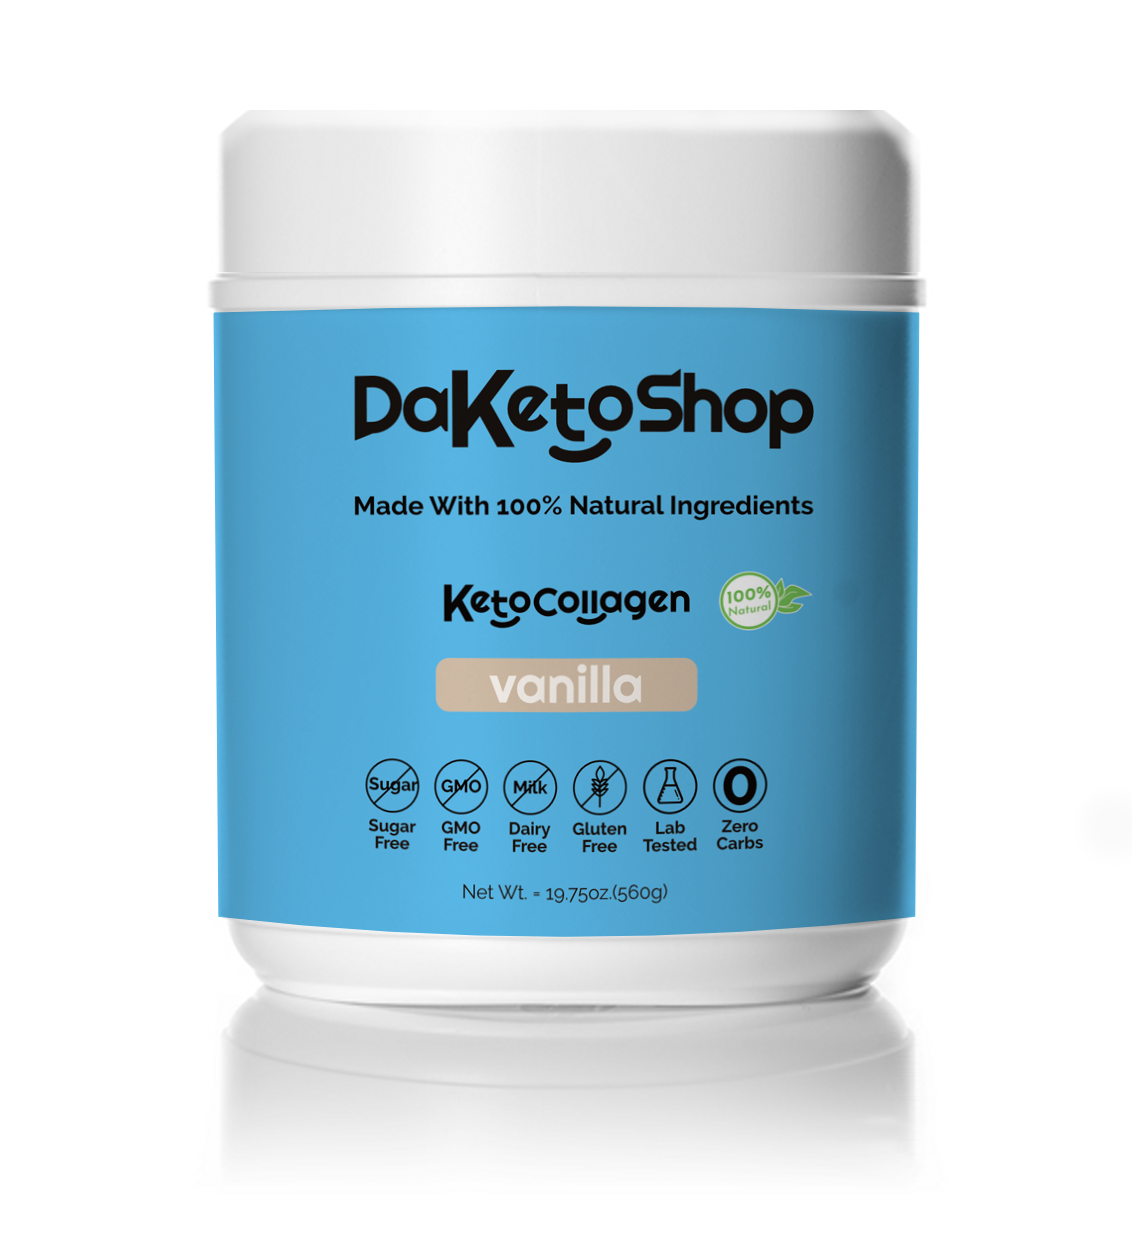 daketoshop french vanilla keto collagen powder